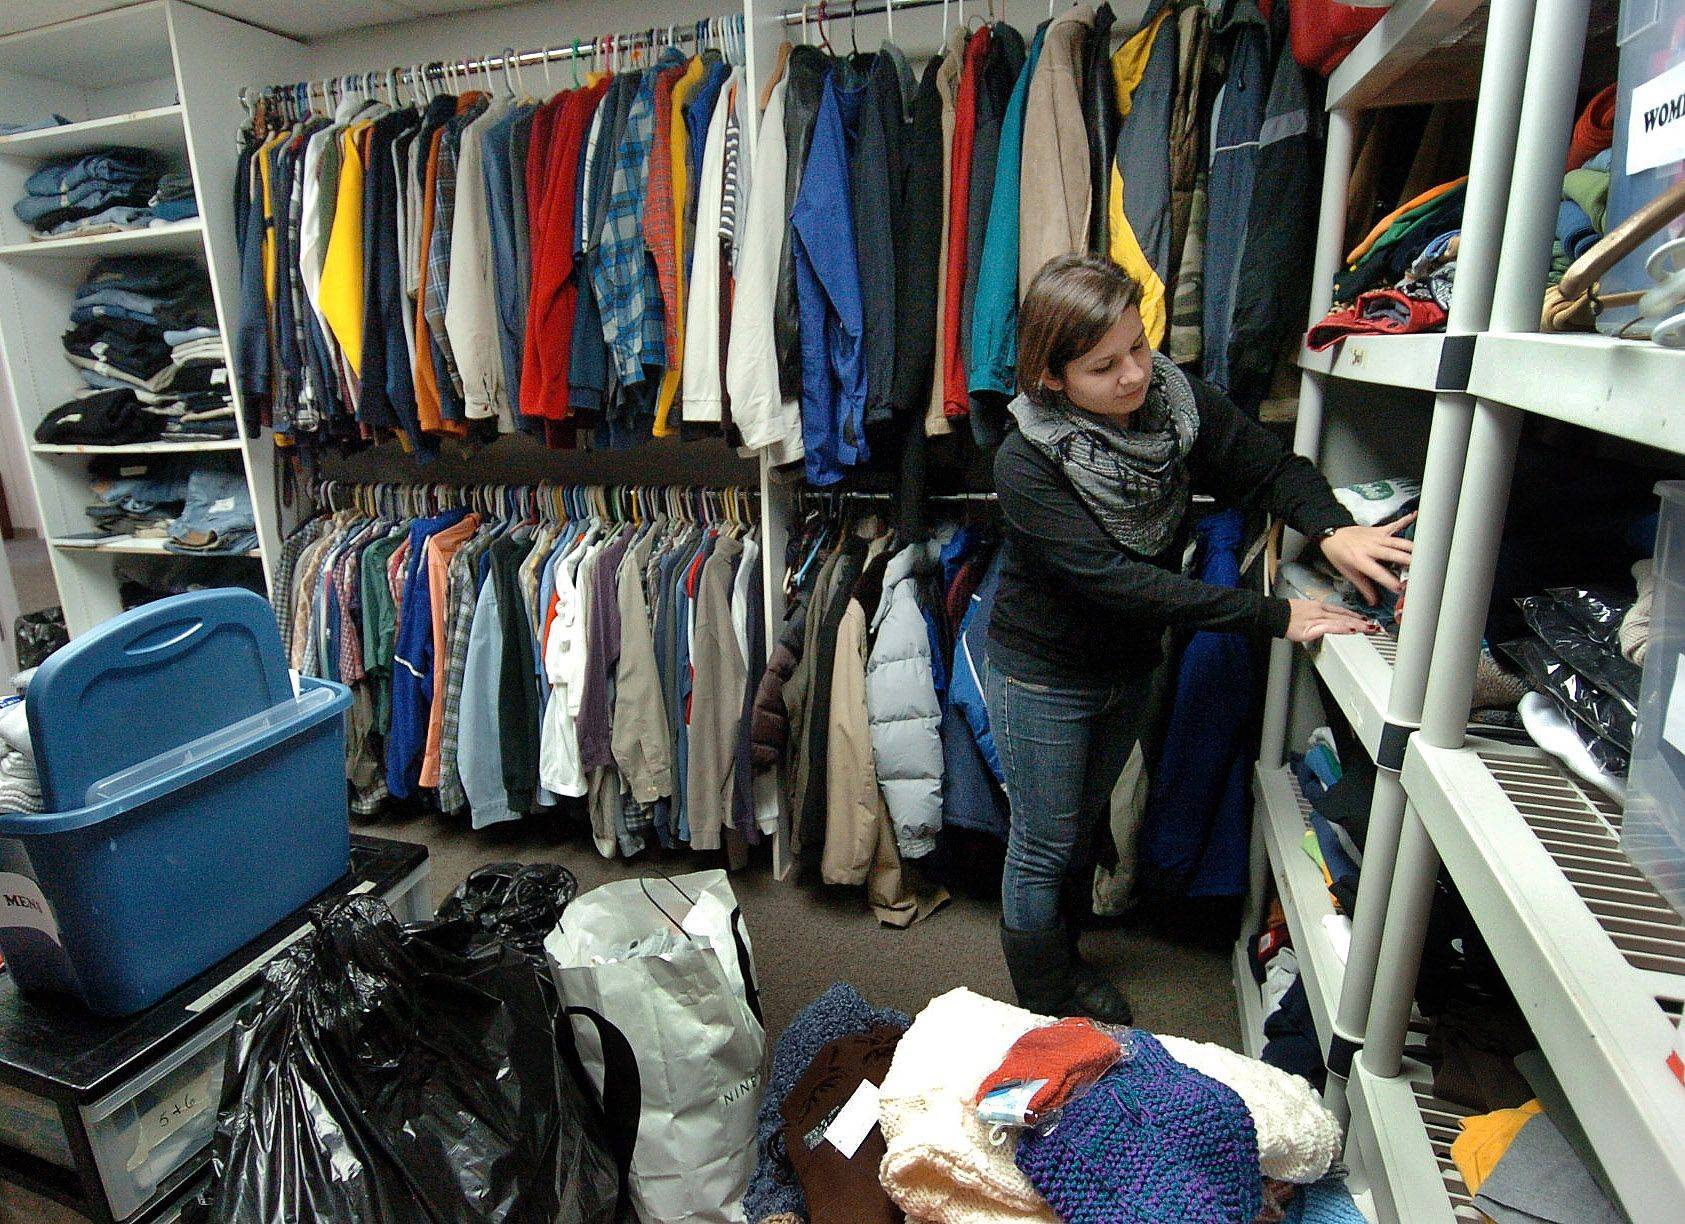 Vocational Assistant Corey Keller sorts through the clothing closet at the PADS shelter in Palatine.